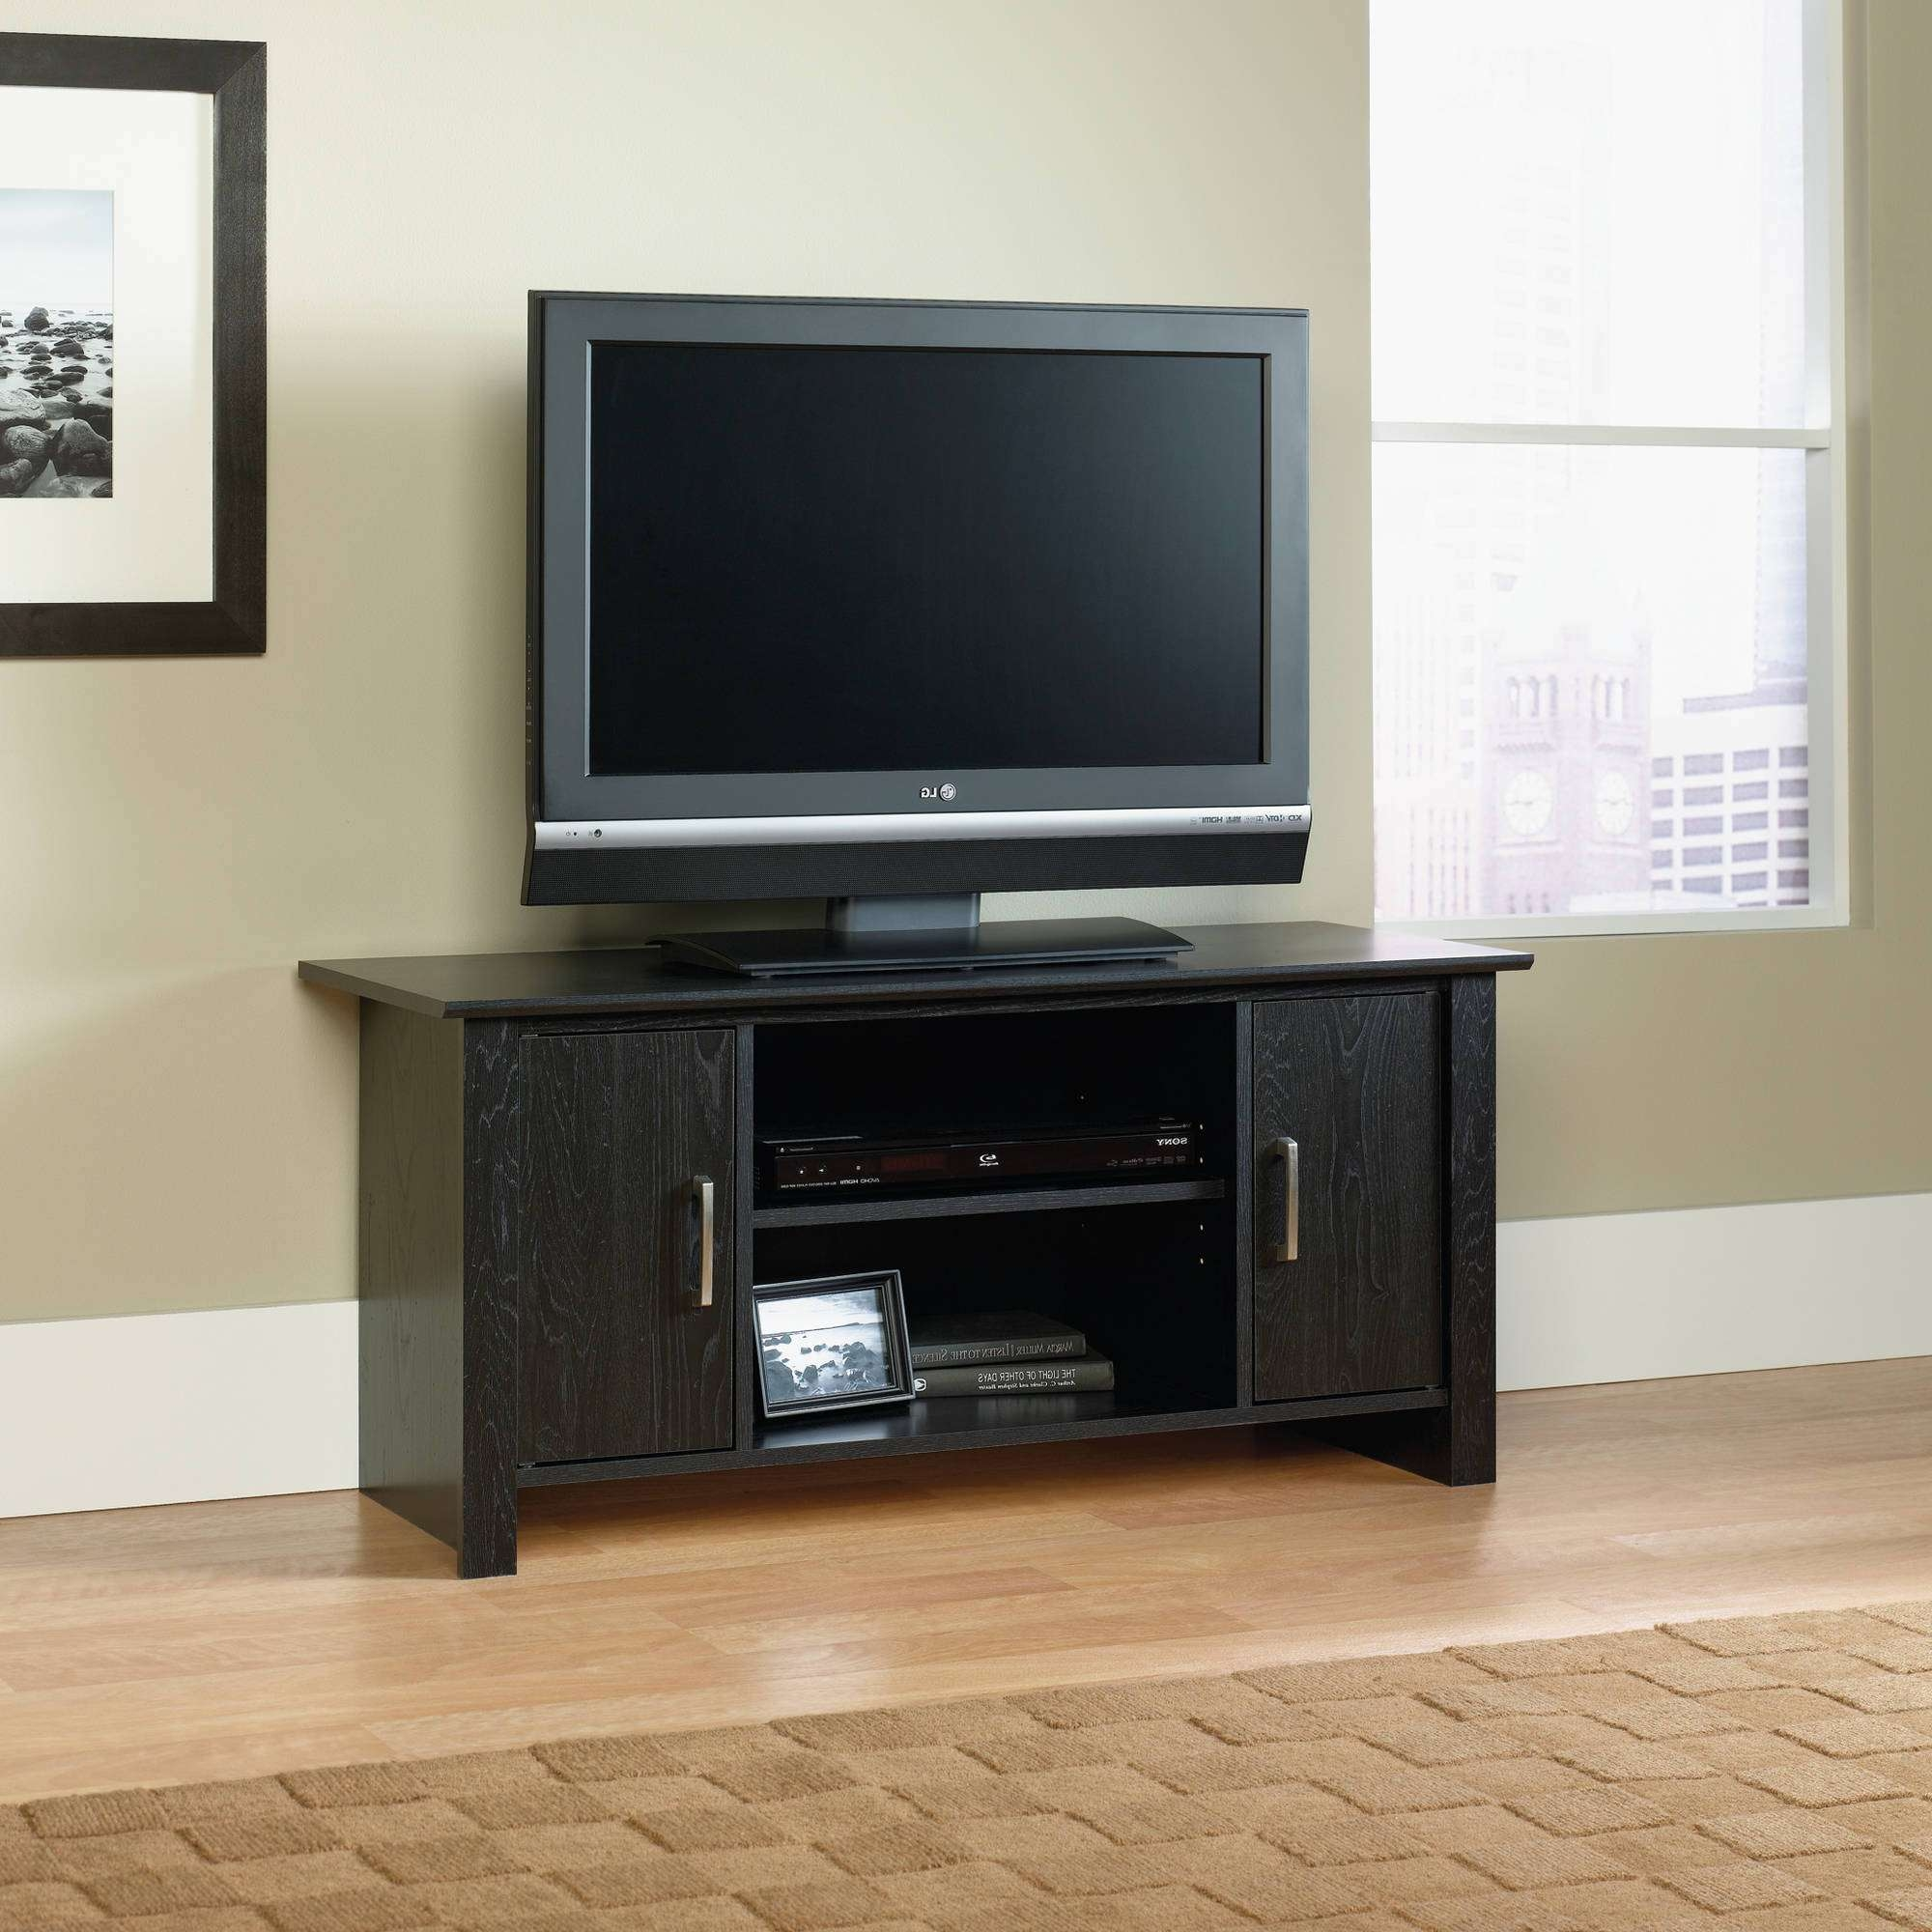 Tv Stand : 41 Marvelous Flat Screen Tv Table Stand Photos Concept In Universal Flat Screen Tv Stands (View 10 of 20)